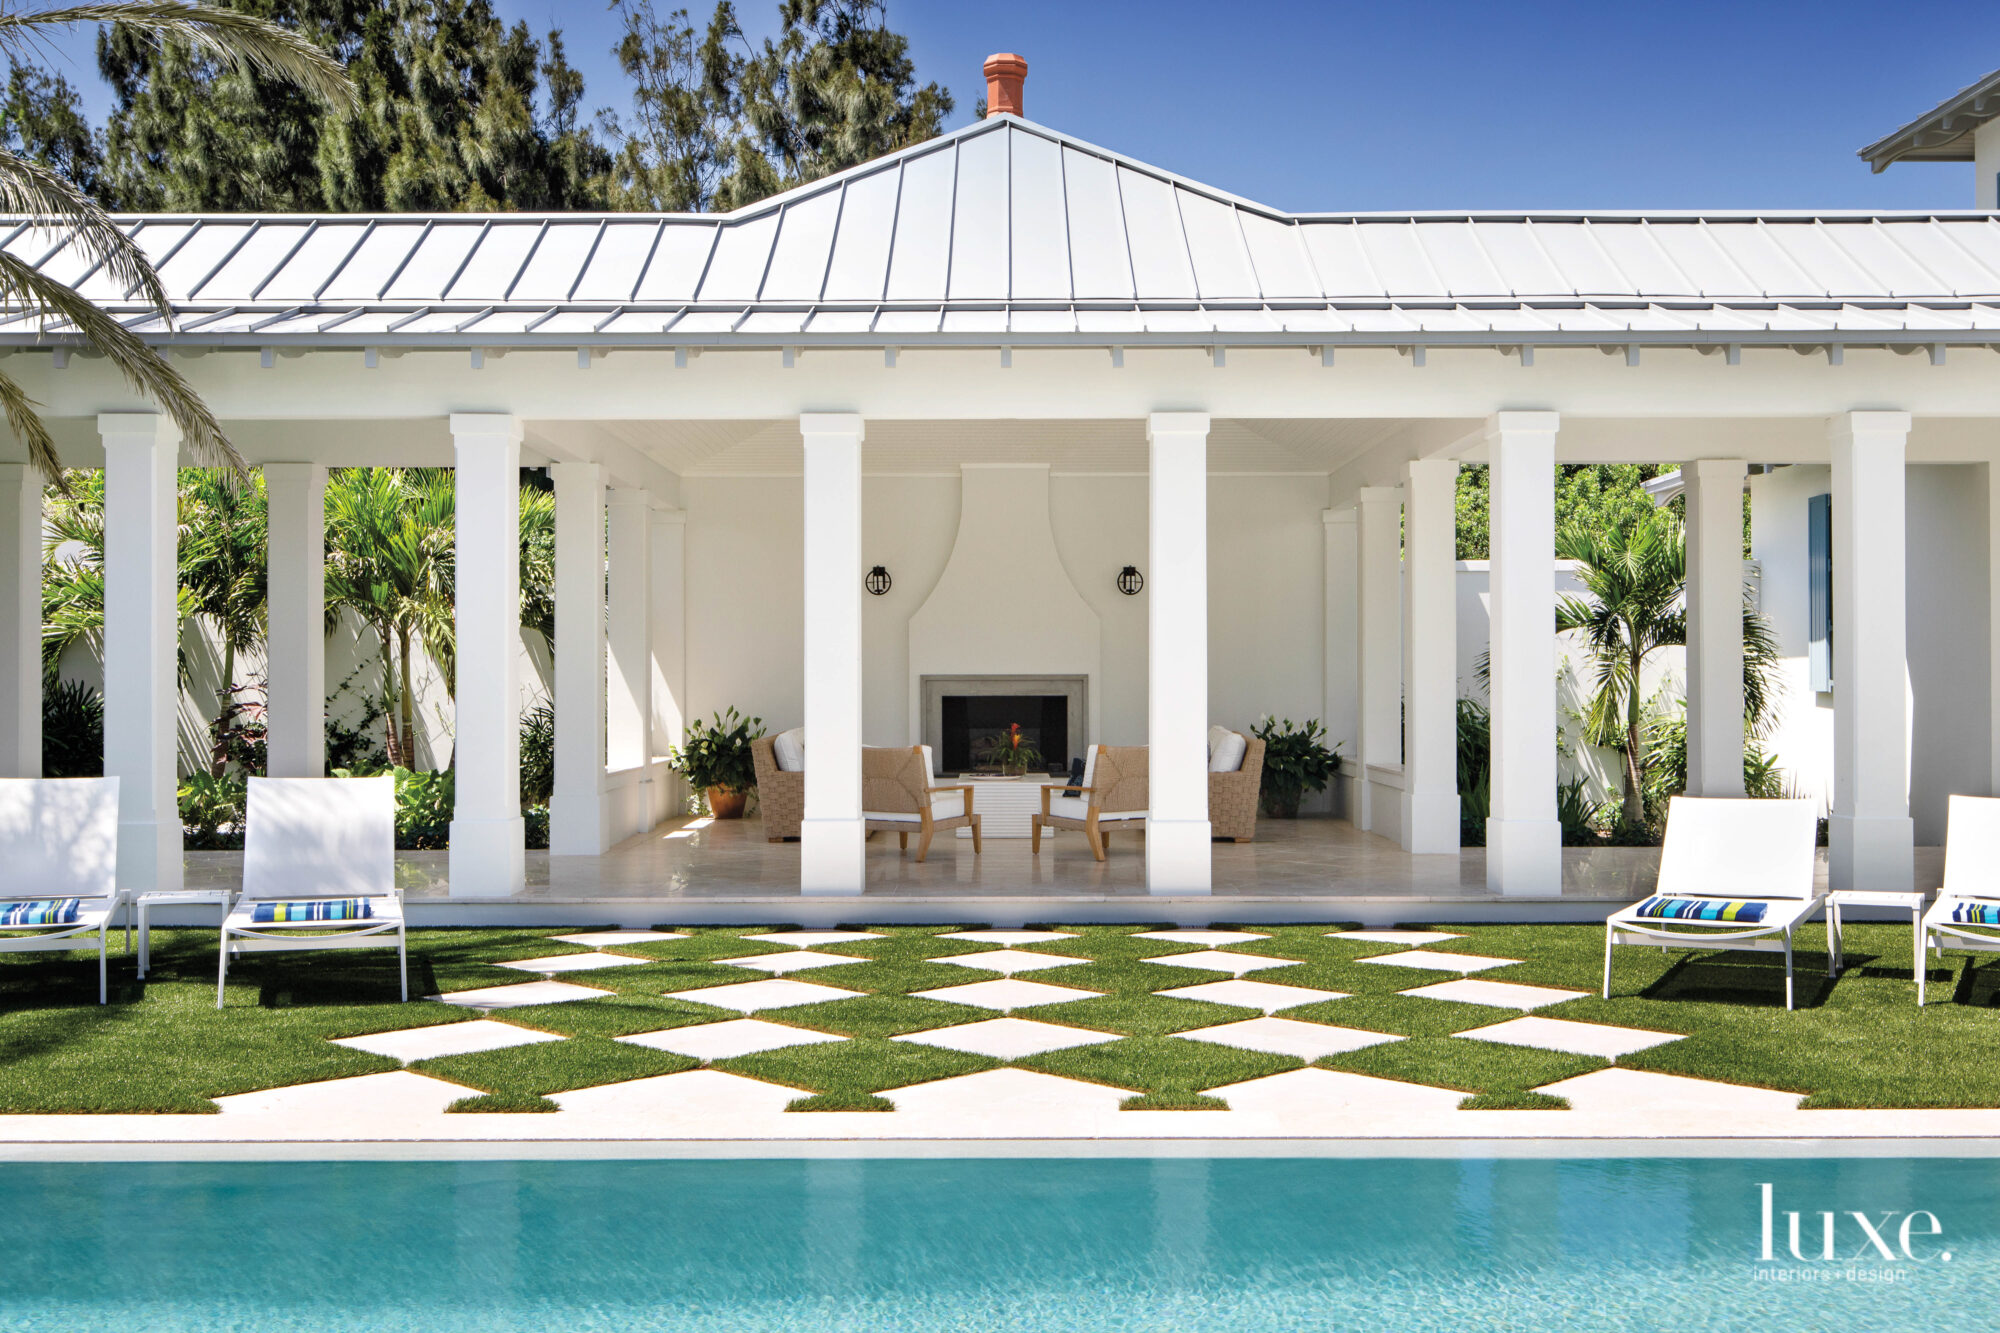 Pool courtyard with covered loggia and checkerboard of turf and hardscape.